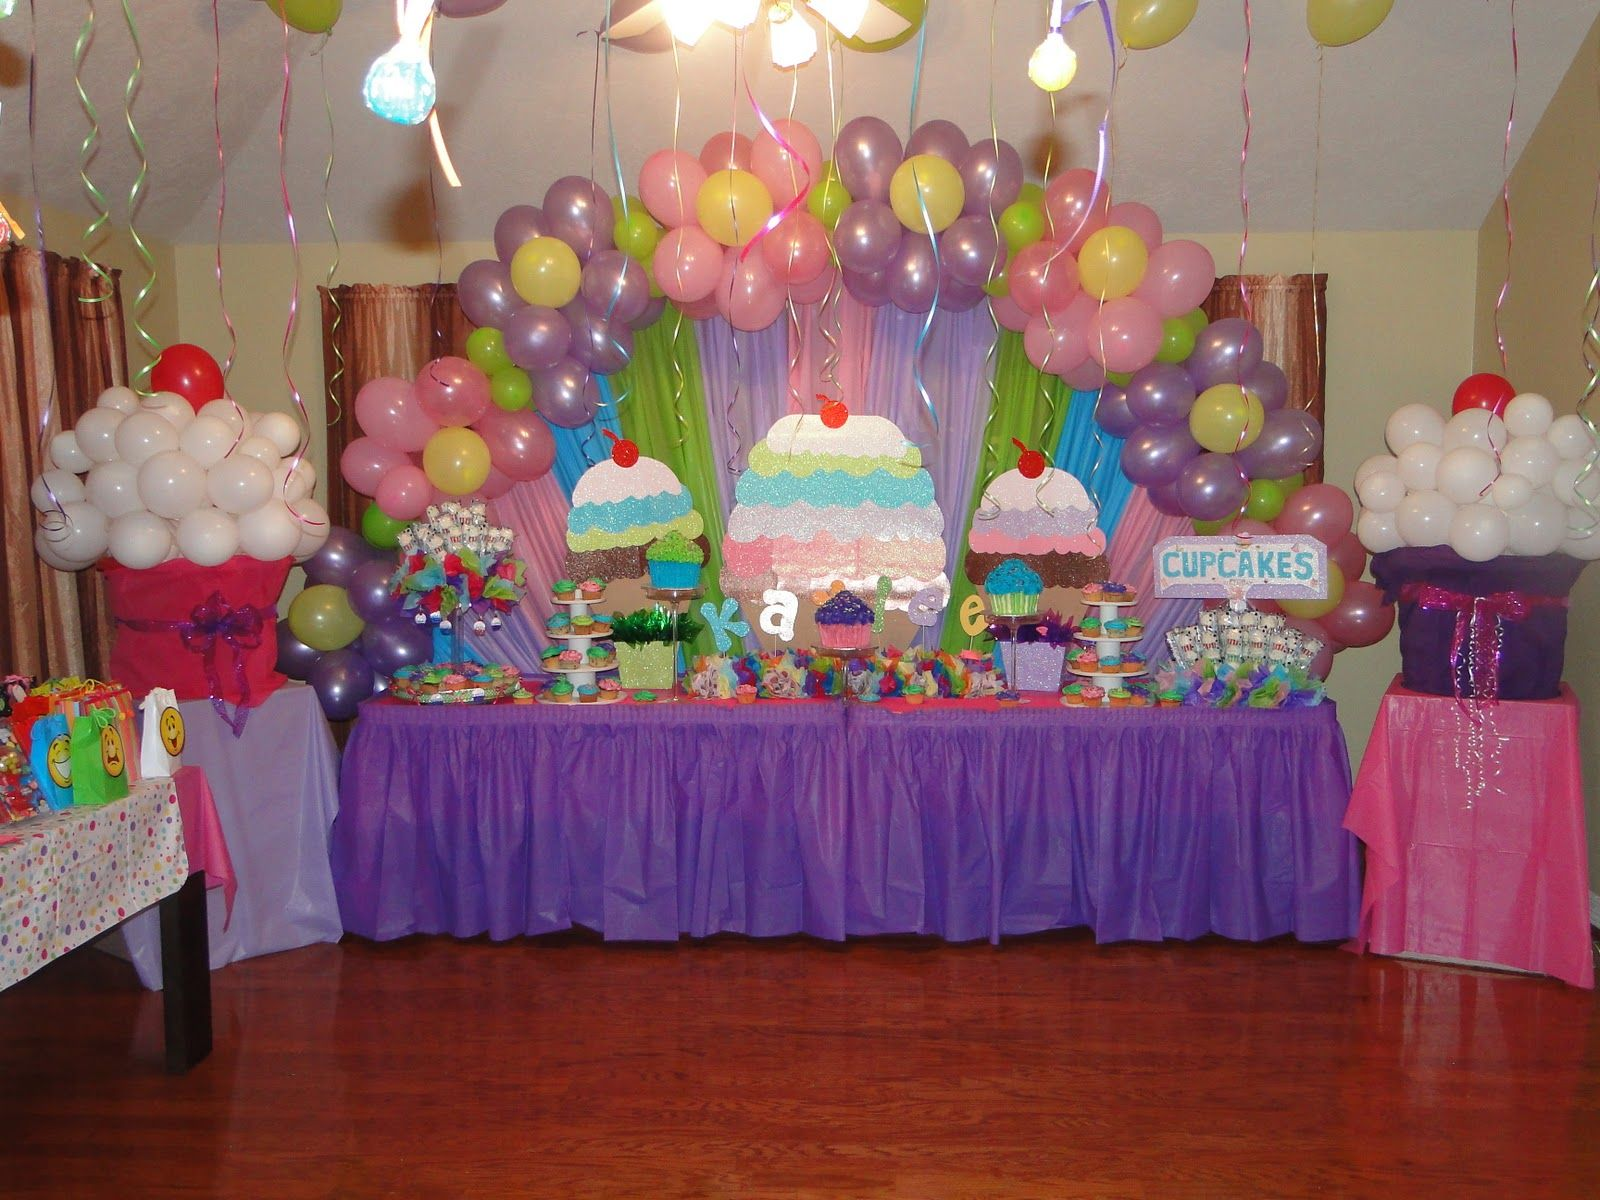 Party balloons decorations - Balloon Decor Centerpieces Party Decorating Dallas Fort Worth Tx Decoration